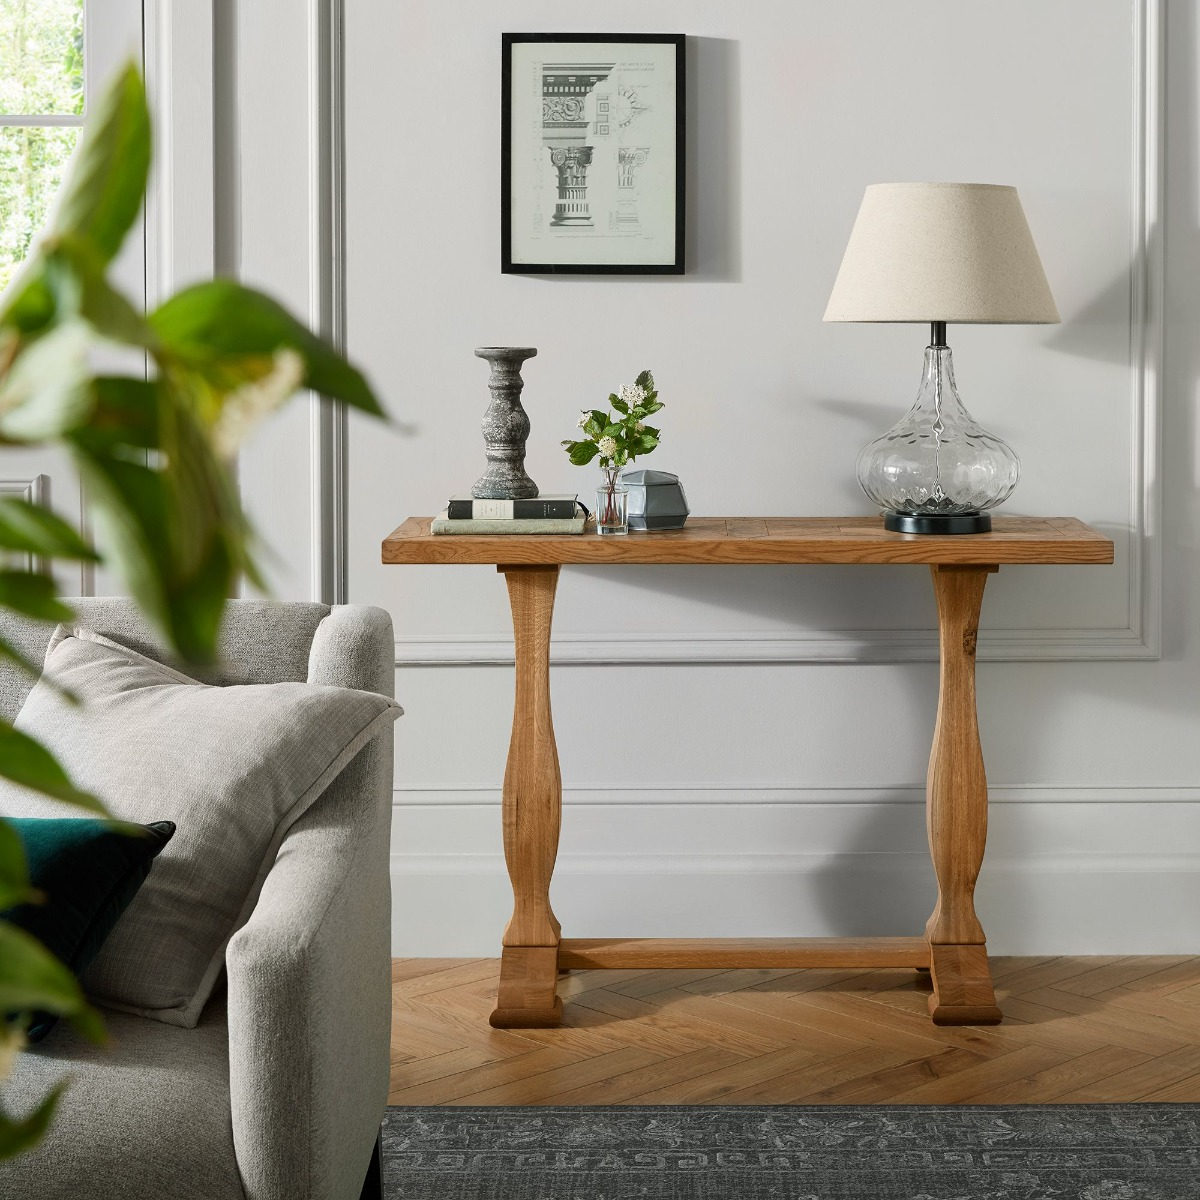 Semicircle Marble Console Tables, Living Room Corridor Side Table Villa Decoration Console Tables For Hallway Size:80 * 35 * 75CM(Size:80 * 35 * 75CM)